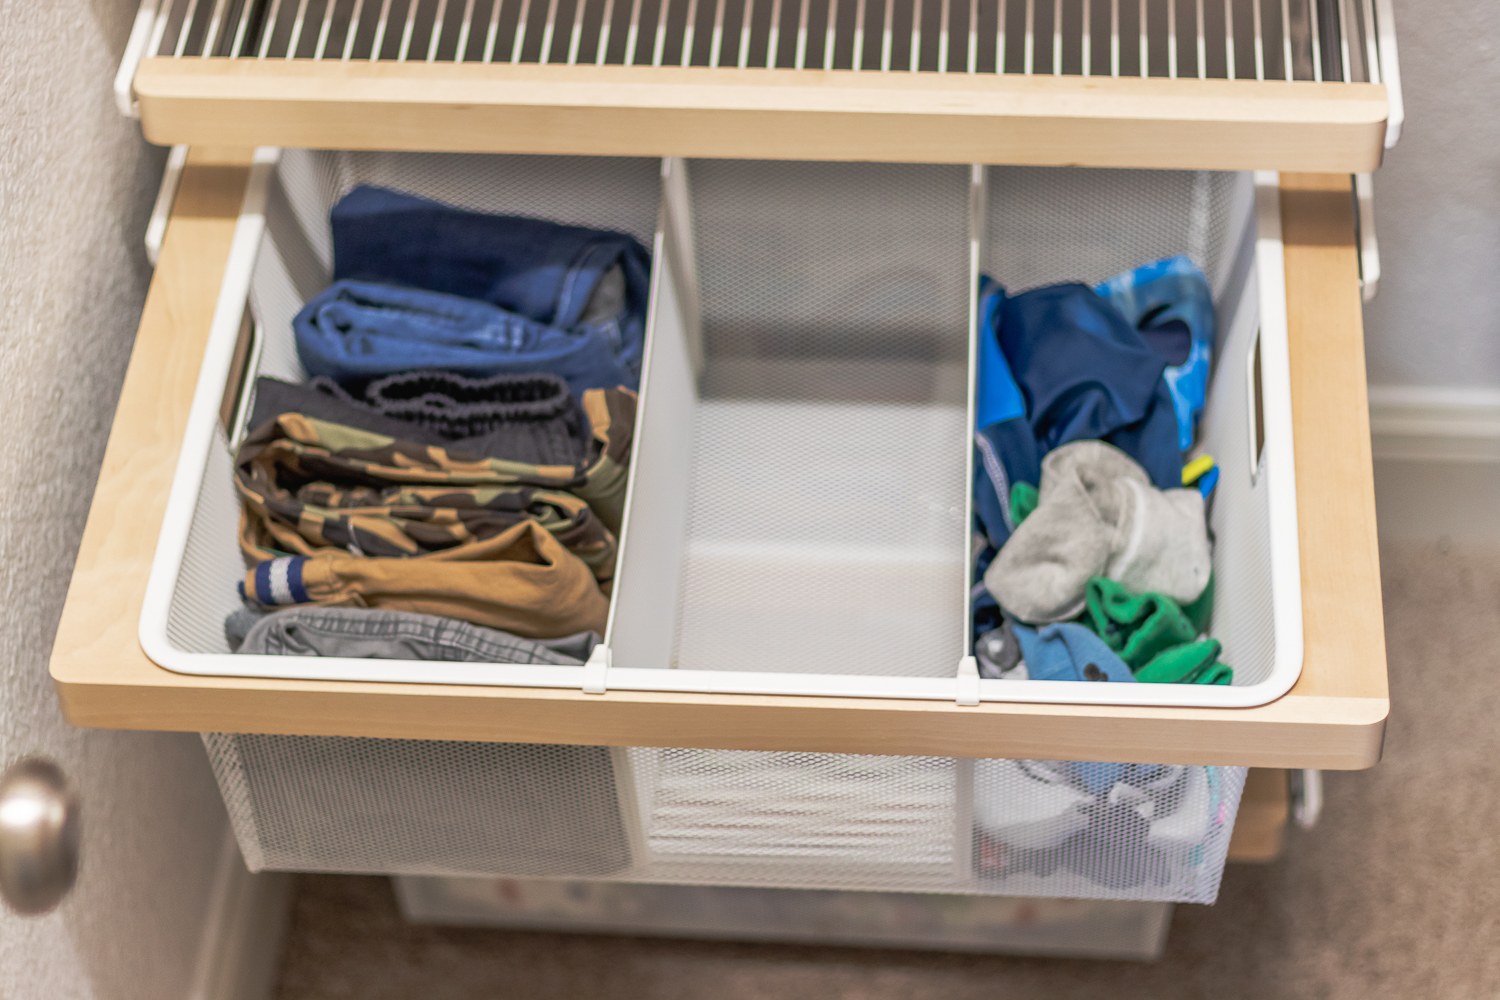 Elfa closet system - drawer dividers